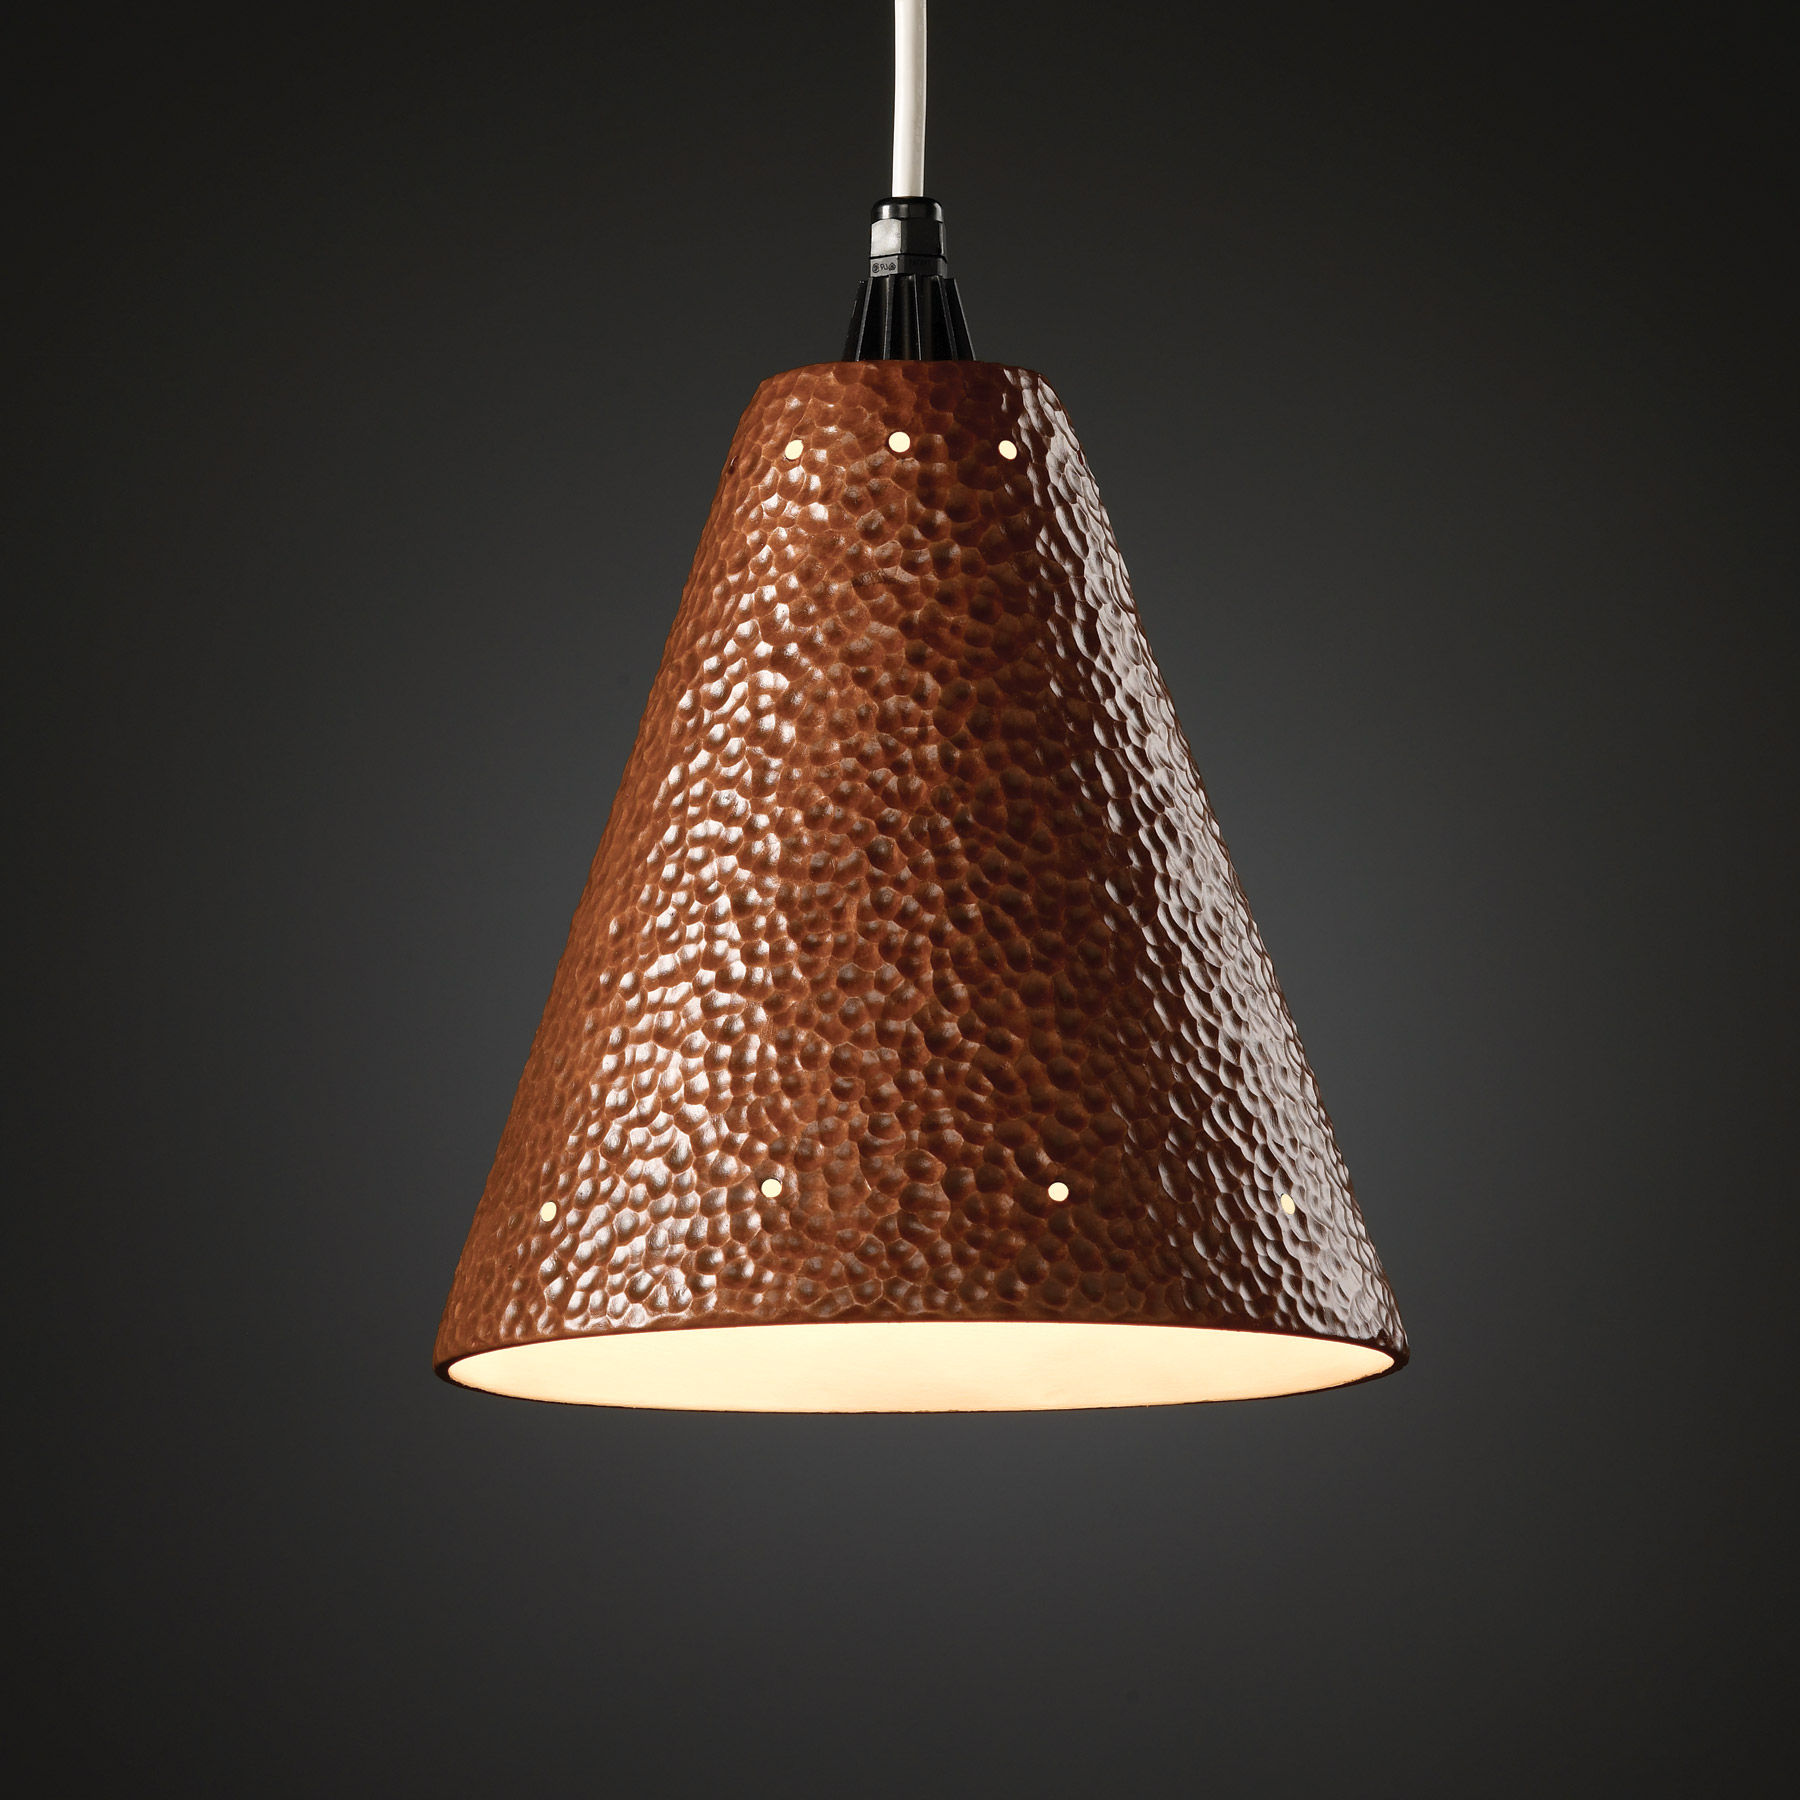 Justice Design Cer 6225 Hmcp Wtcd Radiance Cone Mini Pendant With Perforations